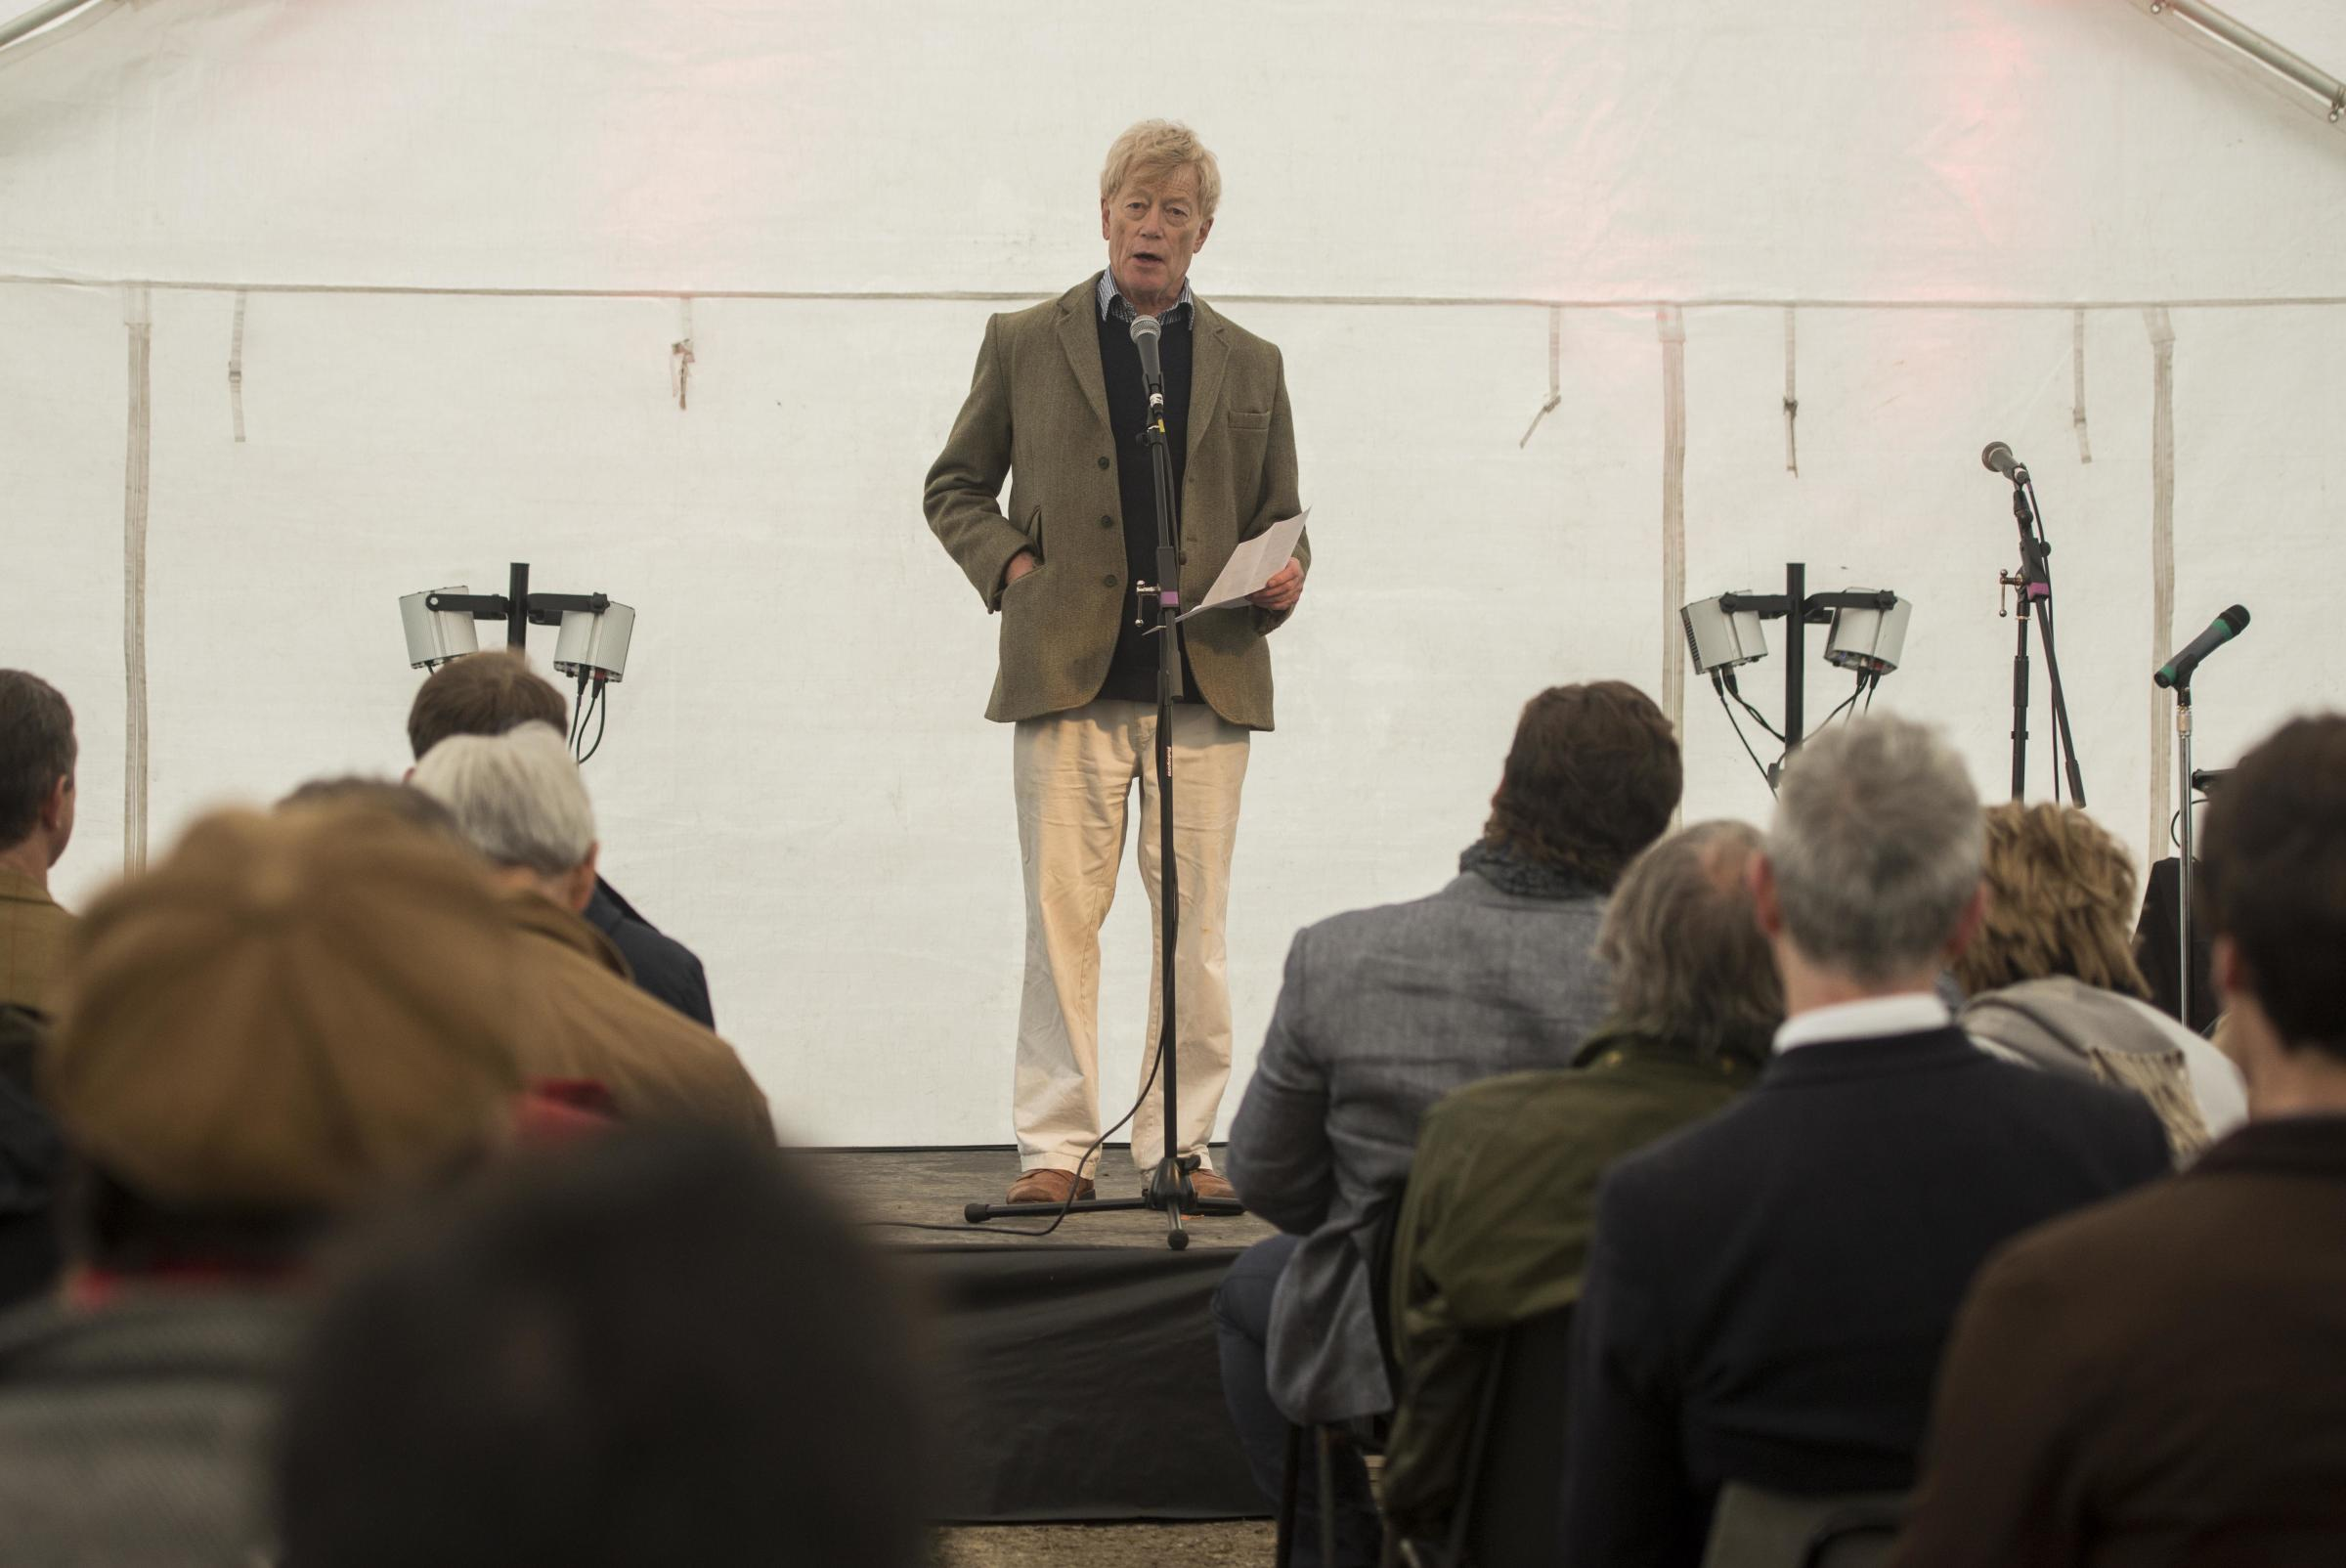 Apple Day and Litrature Festival at Sunday Hill Farm, Brinkworth.Pictured Sir Roger Scruton.22/10/2016.Pictures Clare Green/ www.claregreenphotography.com.